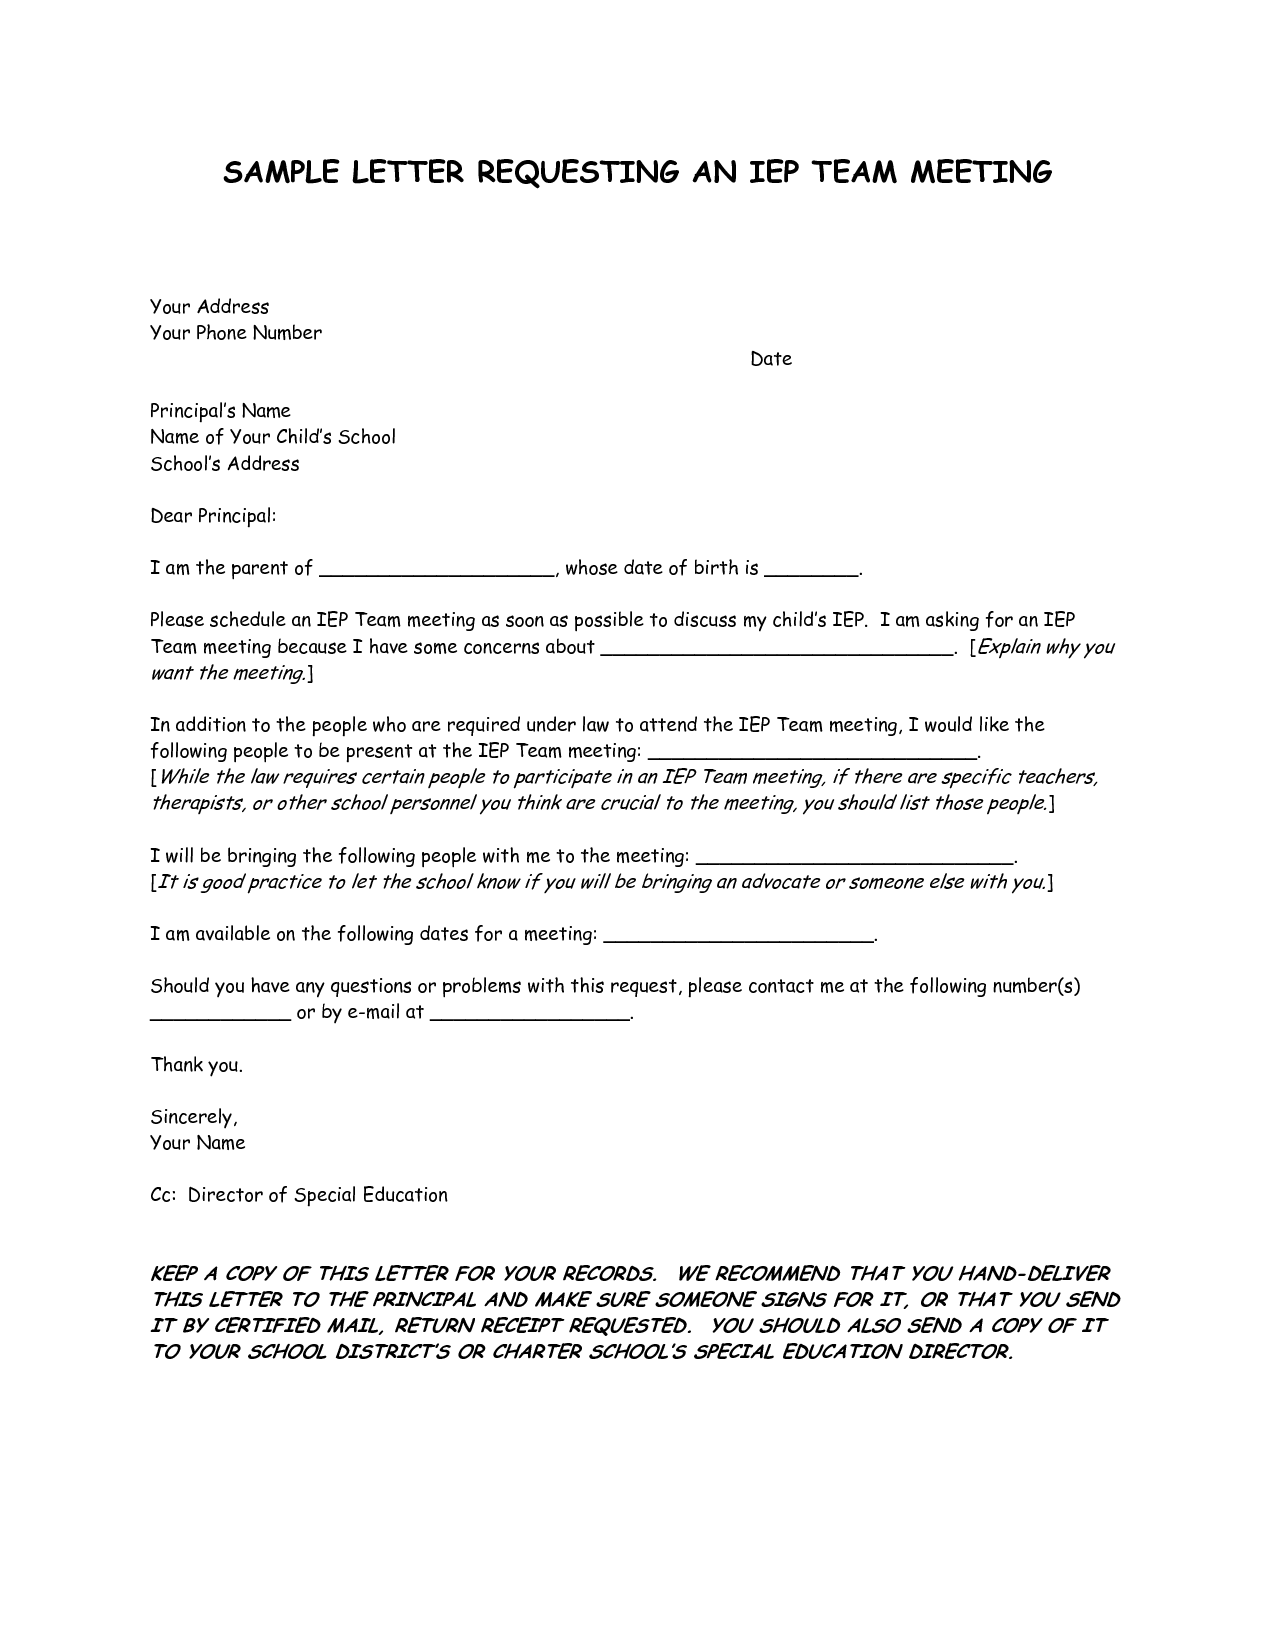 Parent Meeting Letters | SAMPLE LETTER REQUESTING AN IEP TEAM ...